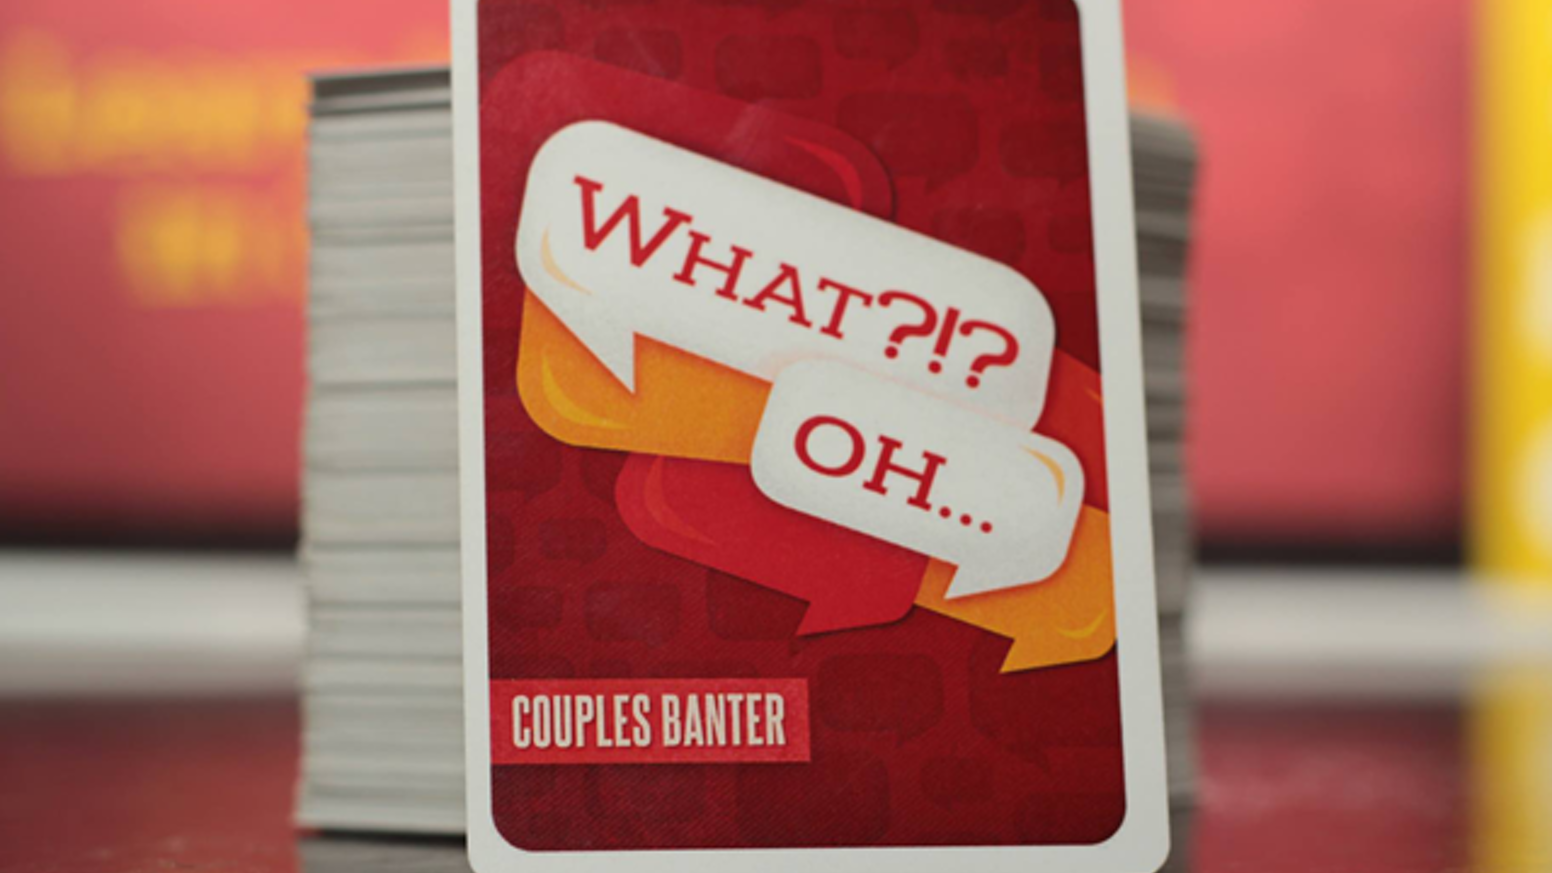 A 15 minute,  2-4 player card game that proves you are absolutely no good at listening. For couples and friends alike.